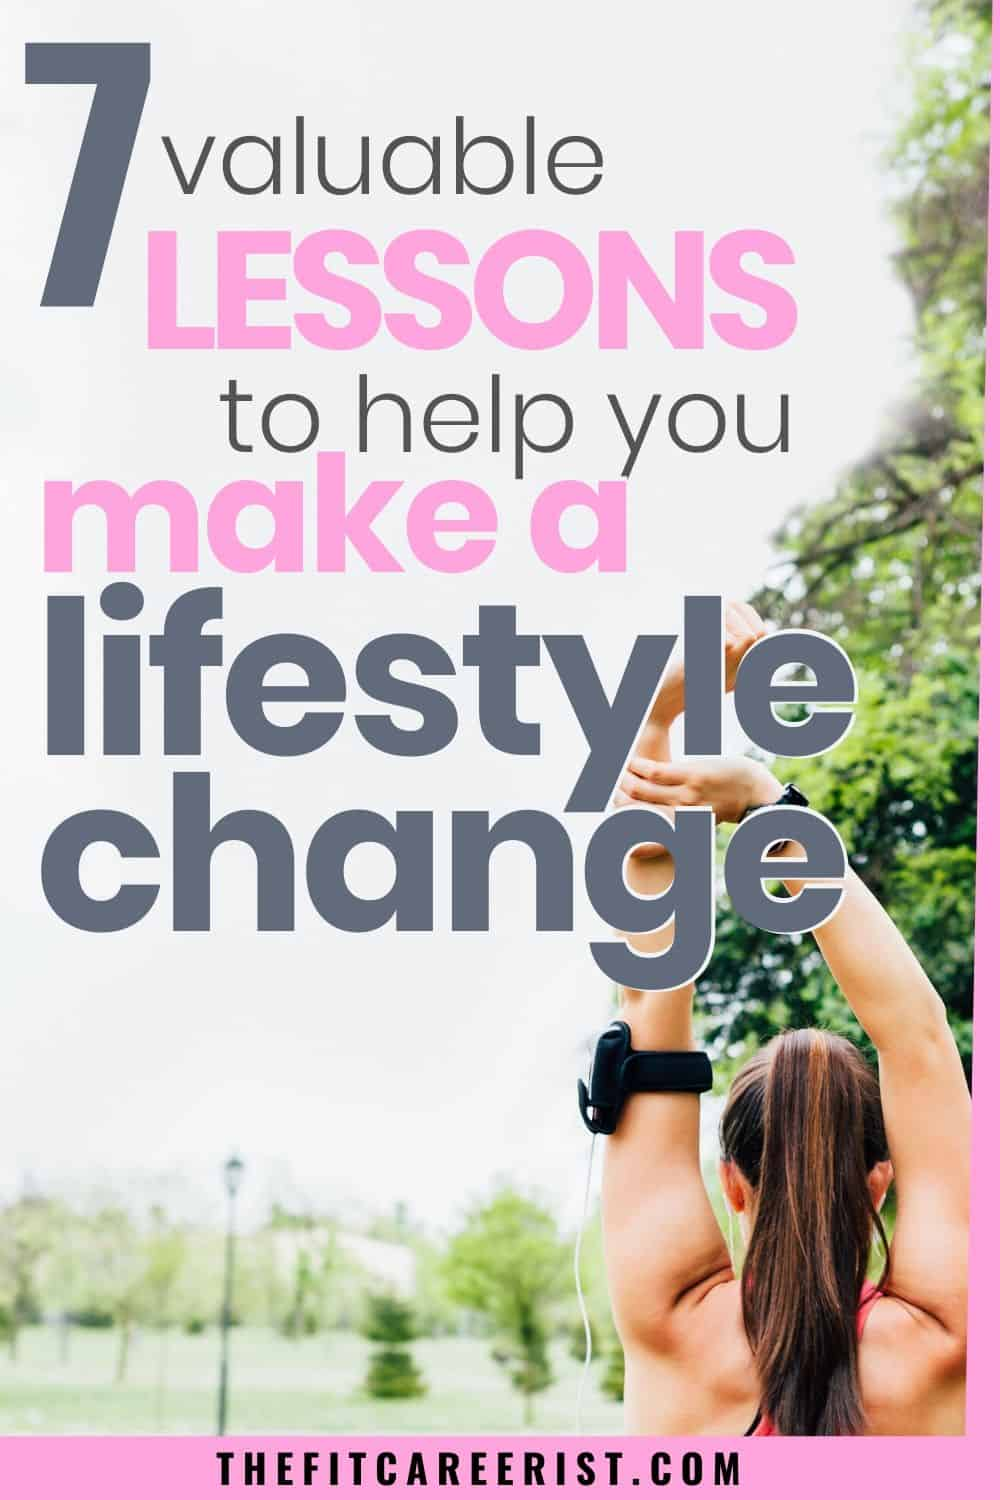 7 Valuable Lessons to Help You Make a Lifestyle Change